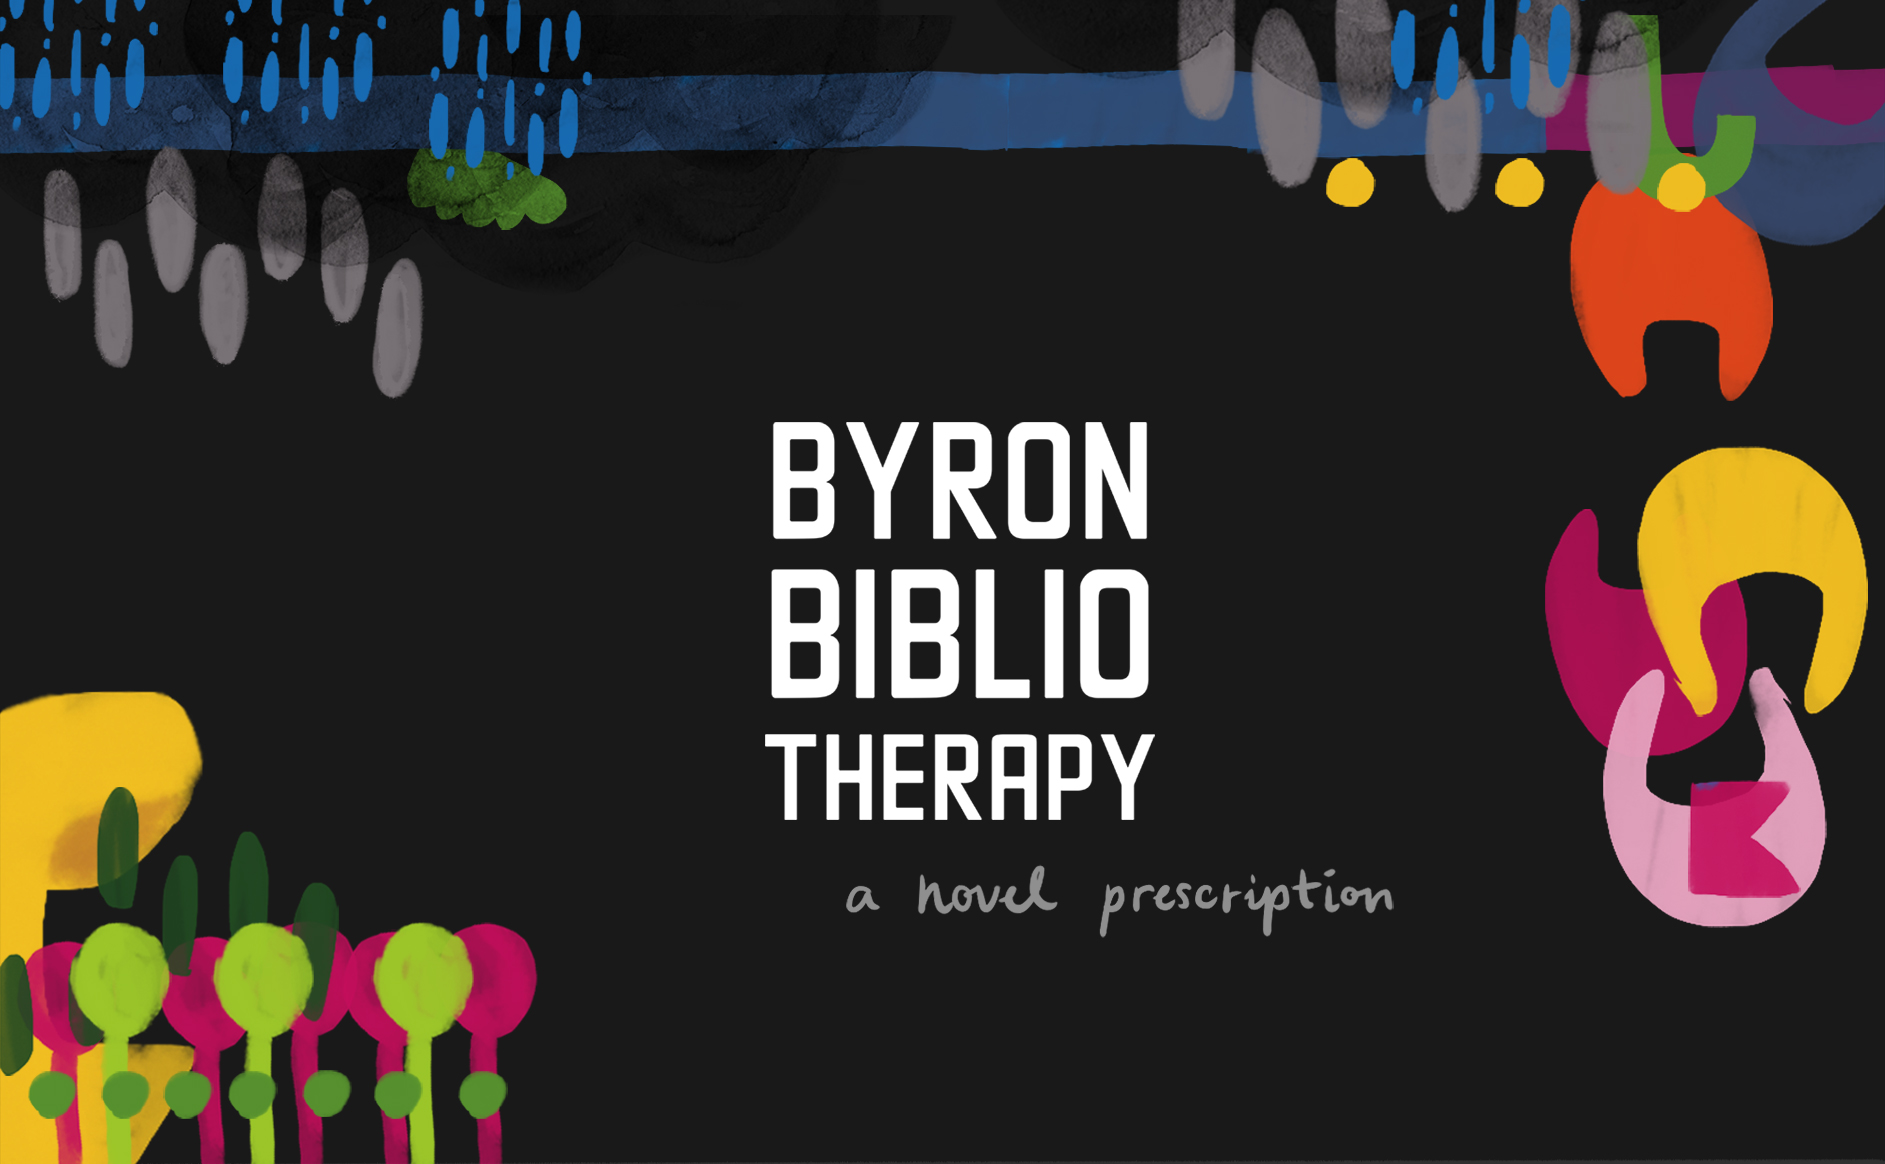 Welcome to Byron Bibliotherapy